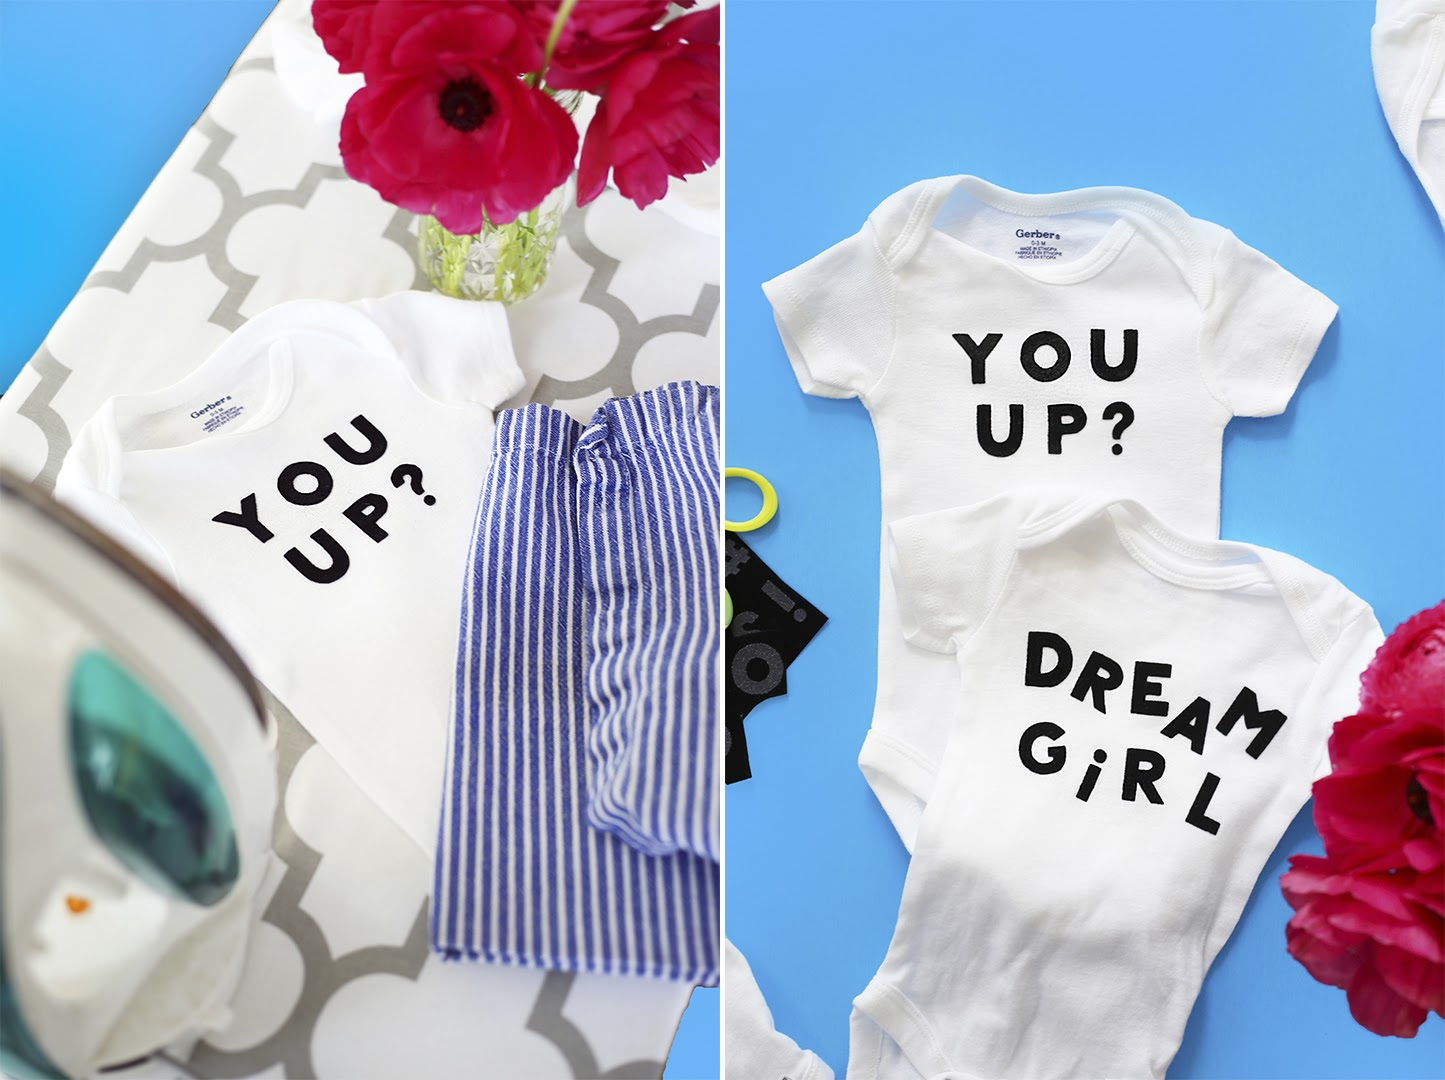 Diy baby shower personalized onesies hey eep that dont make me cringe and dont break the bank i set out to turn a bulk pack of onesies into itty bitty graphic tees even id be down to wear negle Images